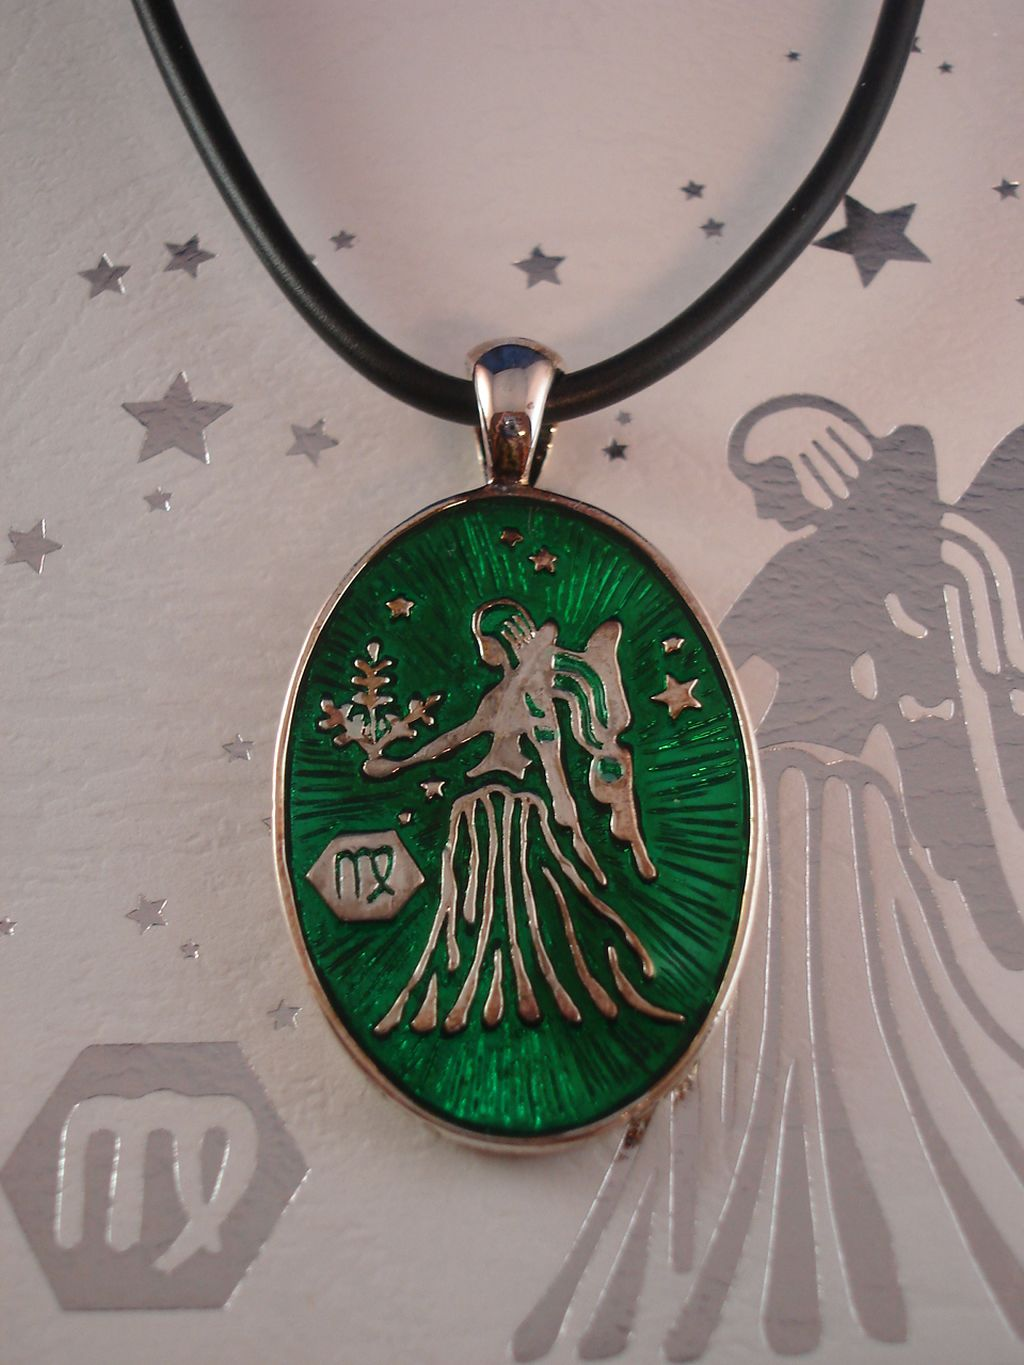 Virgo Symbol Zodiac Sign Necklace, Reversible Metal Pendant w/ Side Engraving